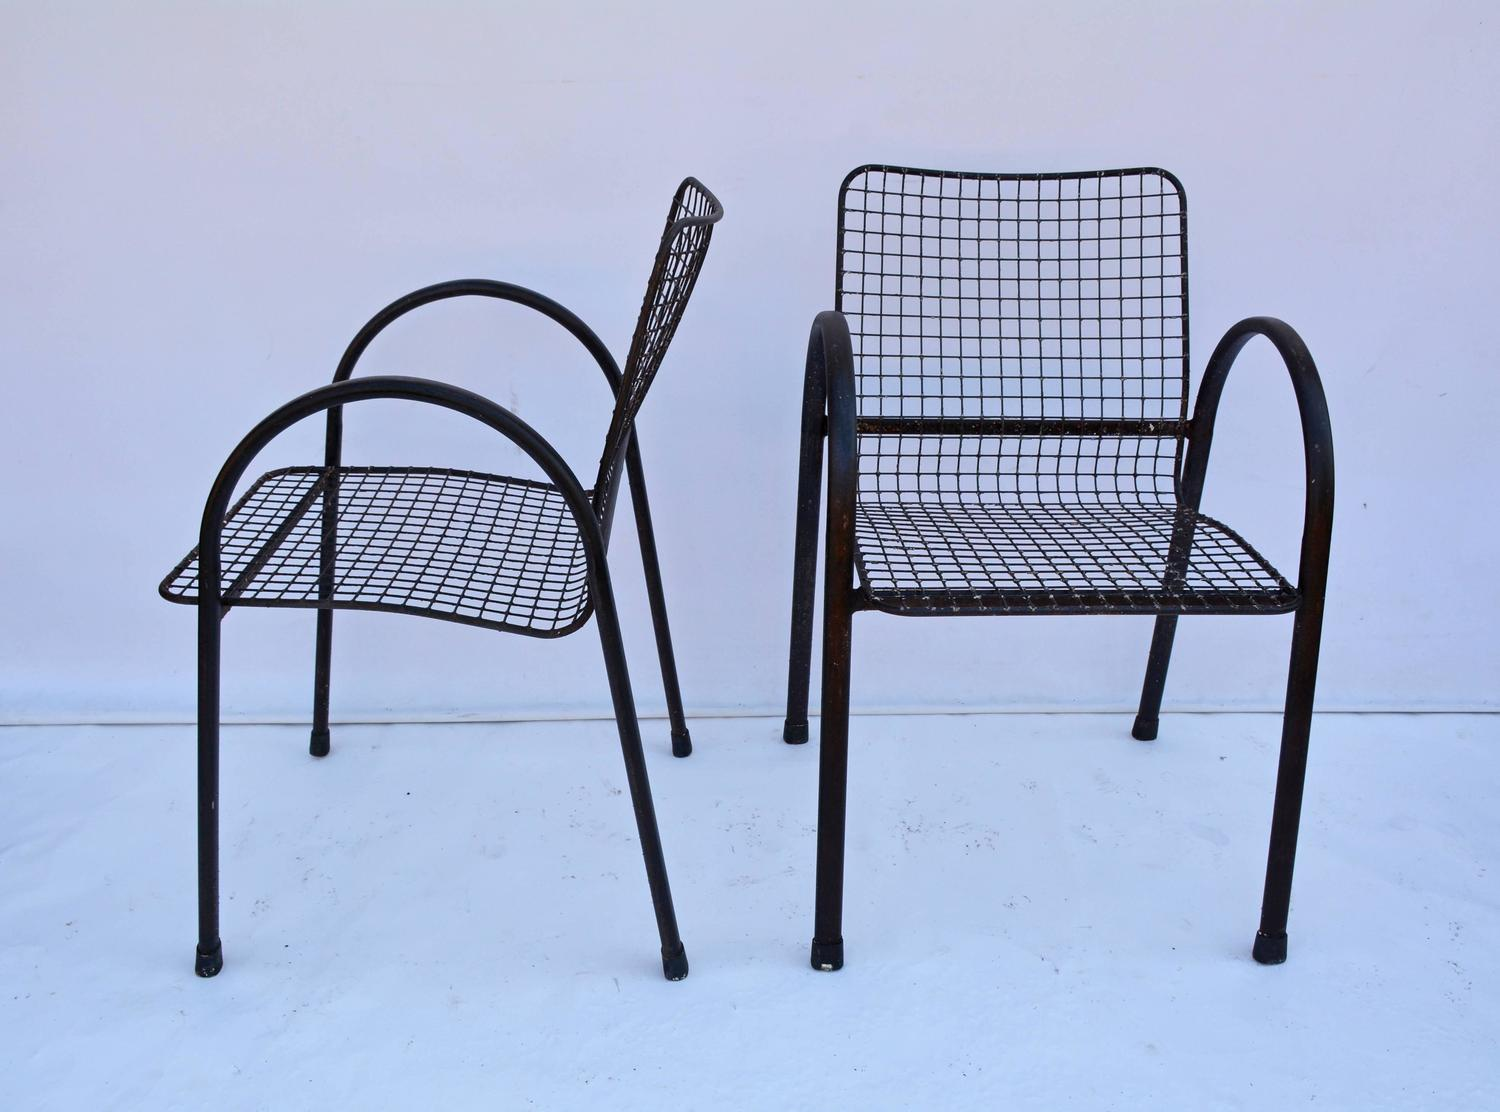 Four Patio Wrought Iron Mesh Arm Chairs For Sale at 1stdibs